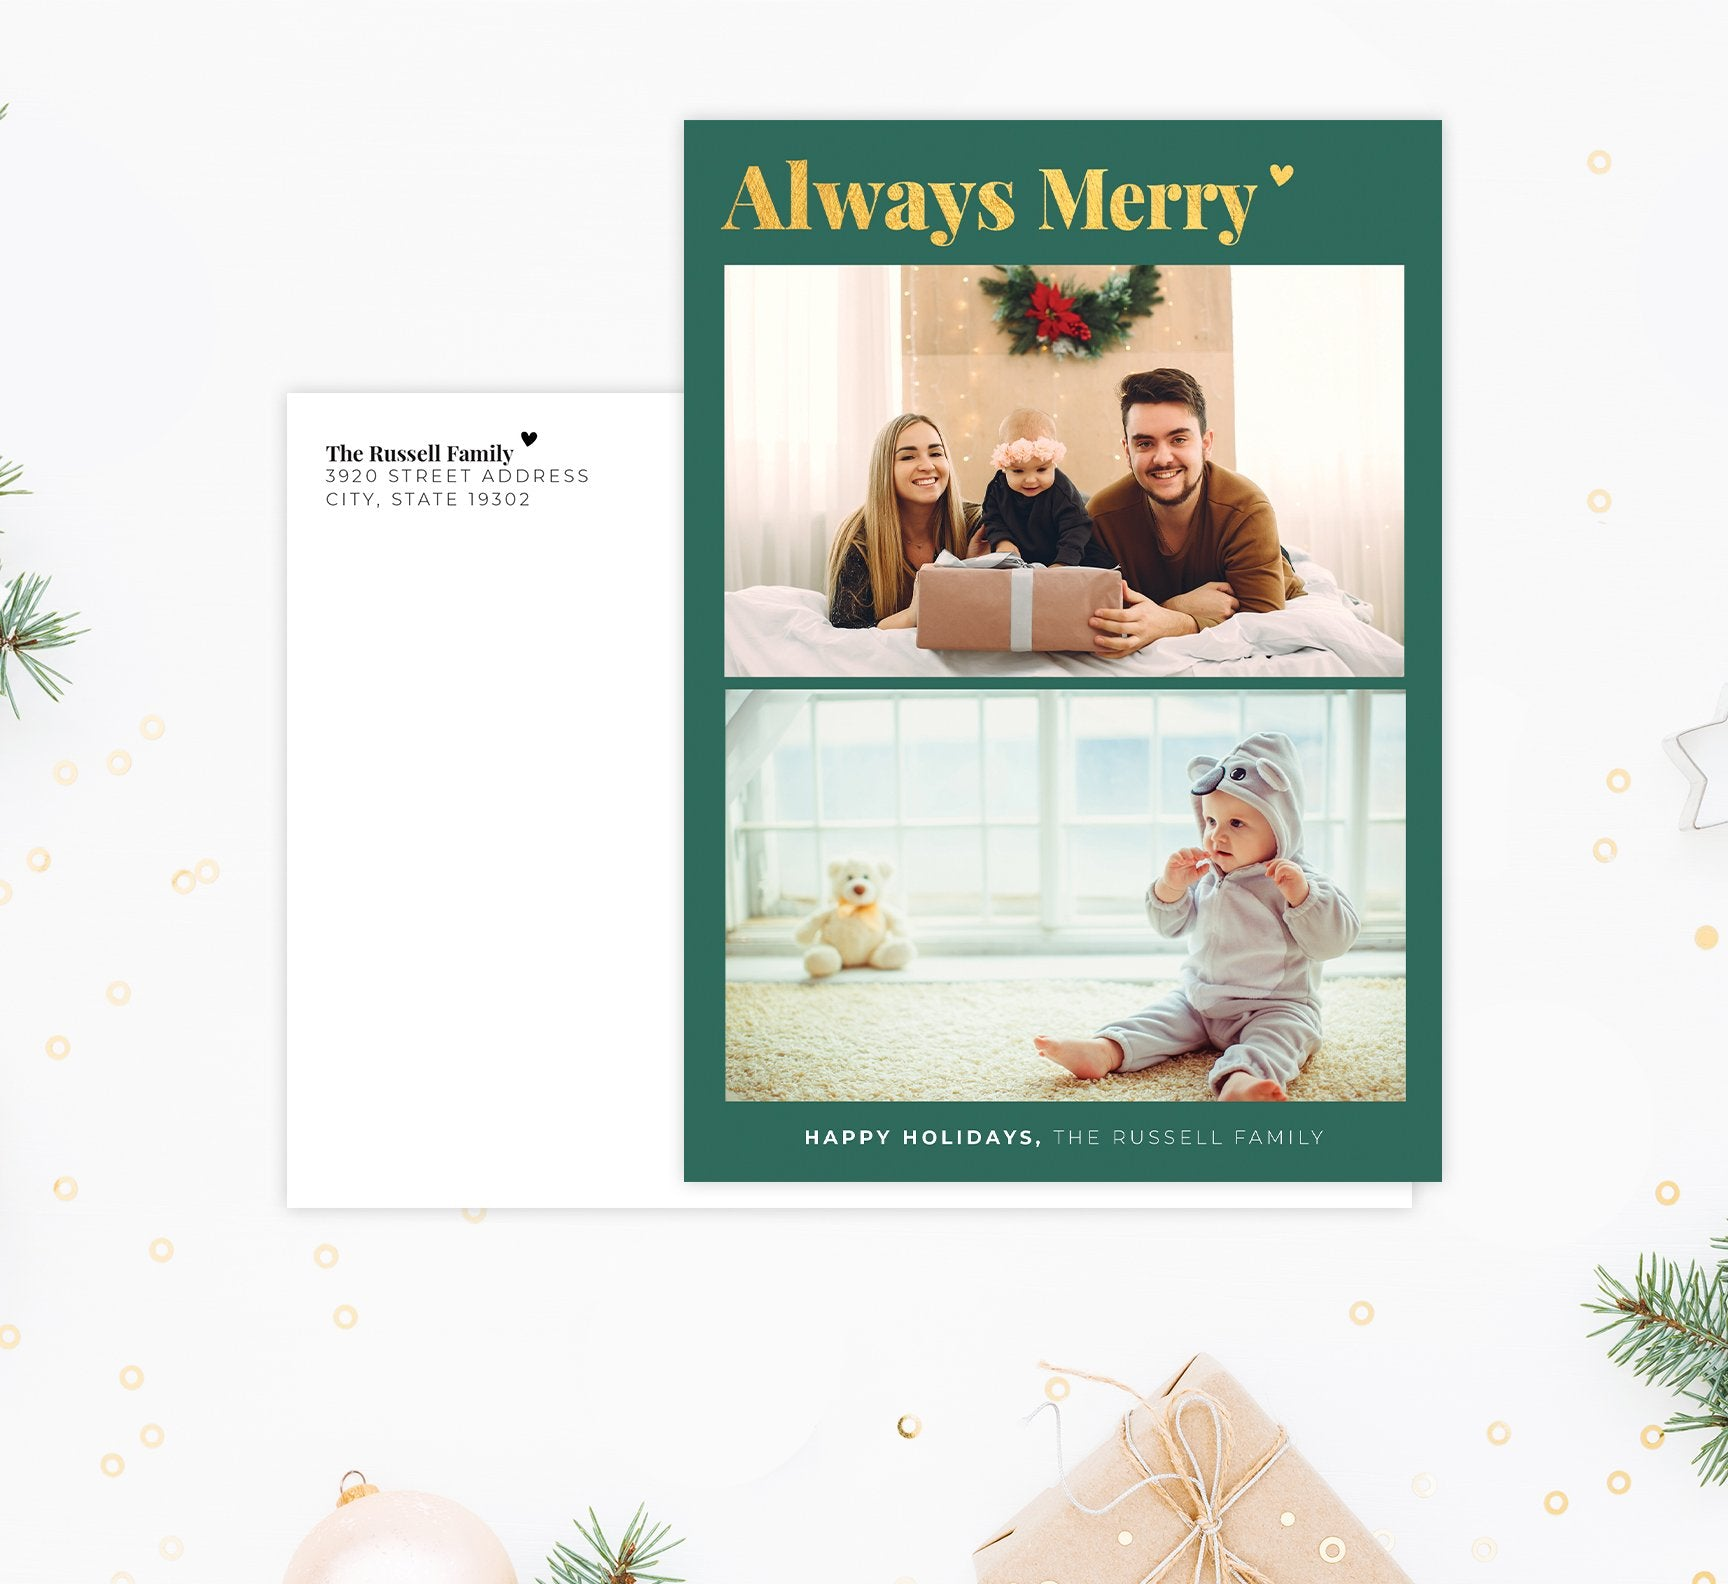 Always Merry Holiday Card Mockup; Holiday card with envelope and return address printed on it.